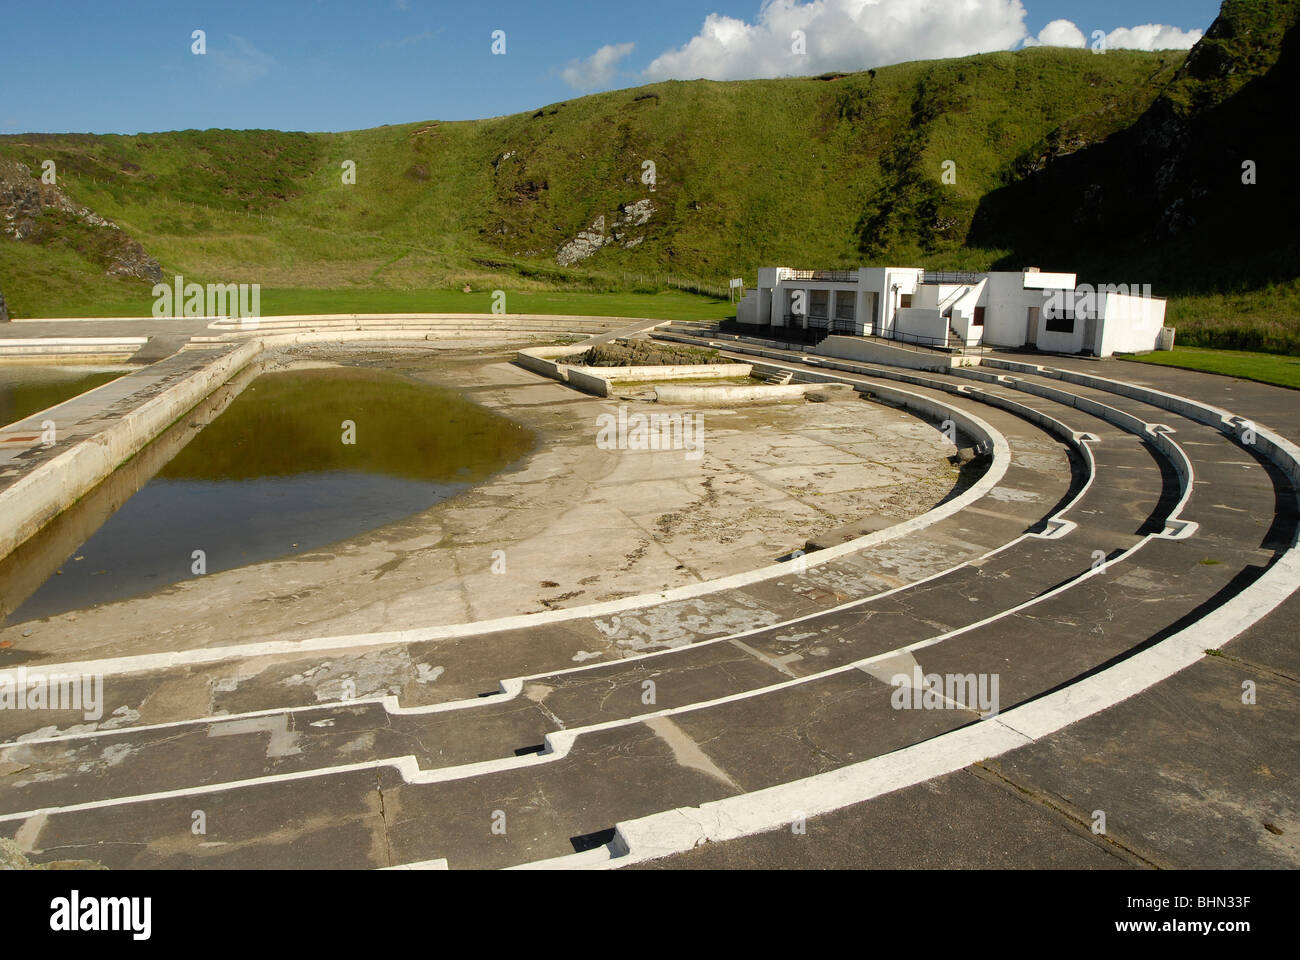 Tarlair Swimming Pool Macduff Aberdeenshire Outdoor Pools Opened Stock Photo Royalty Free